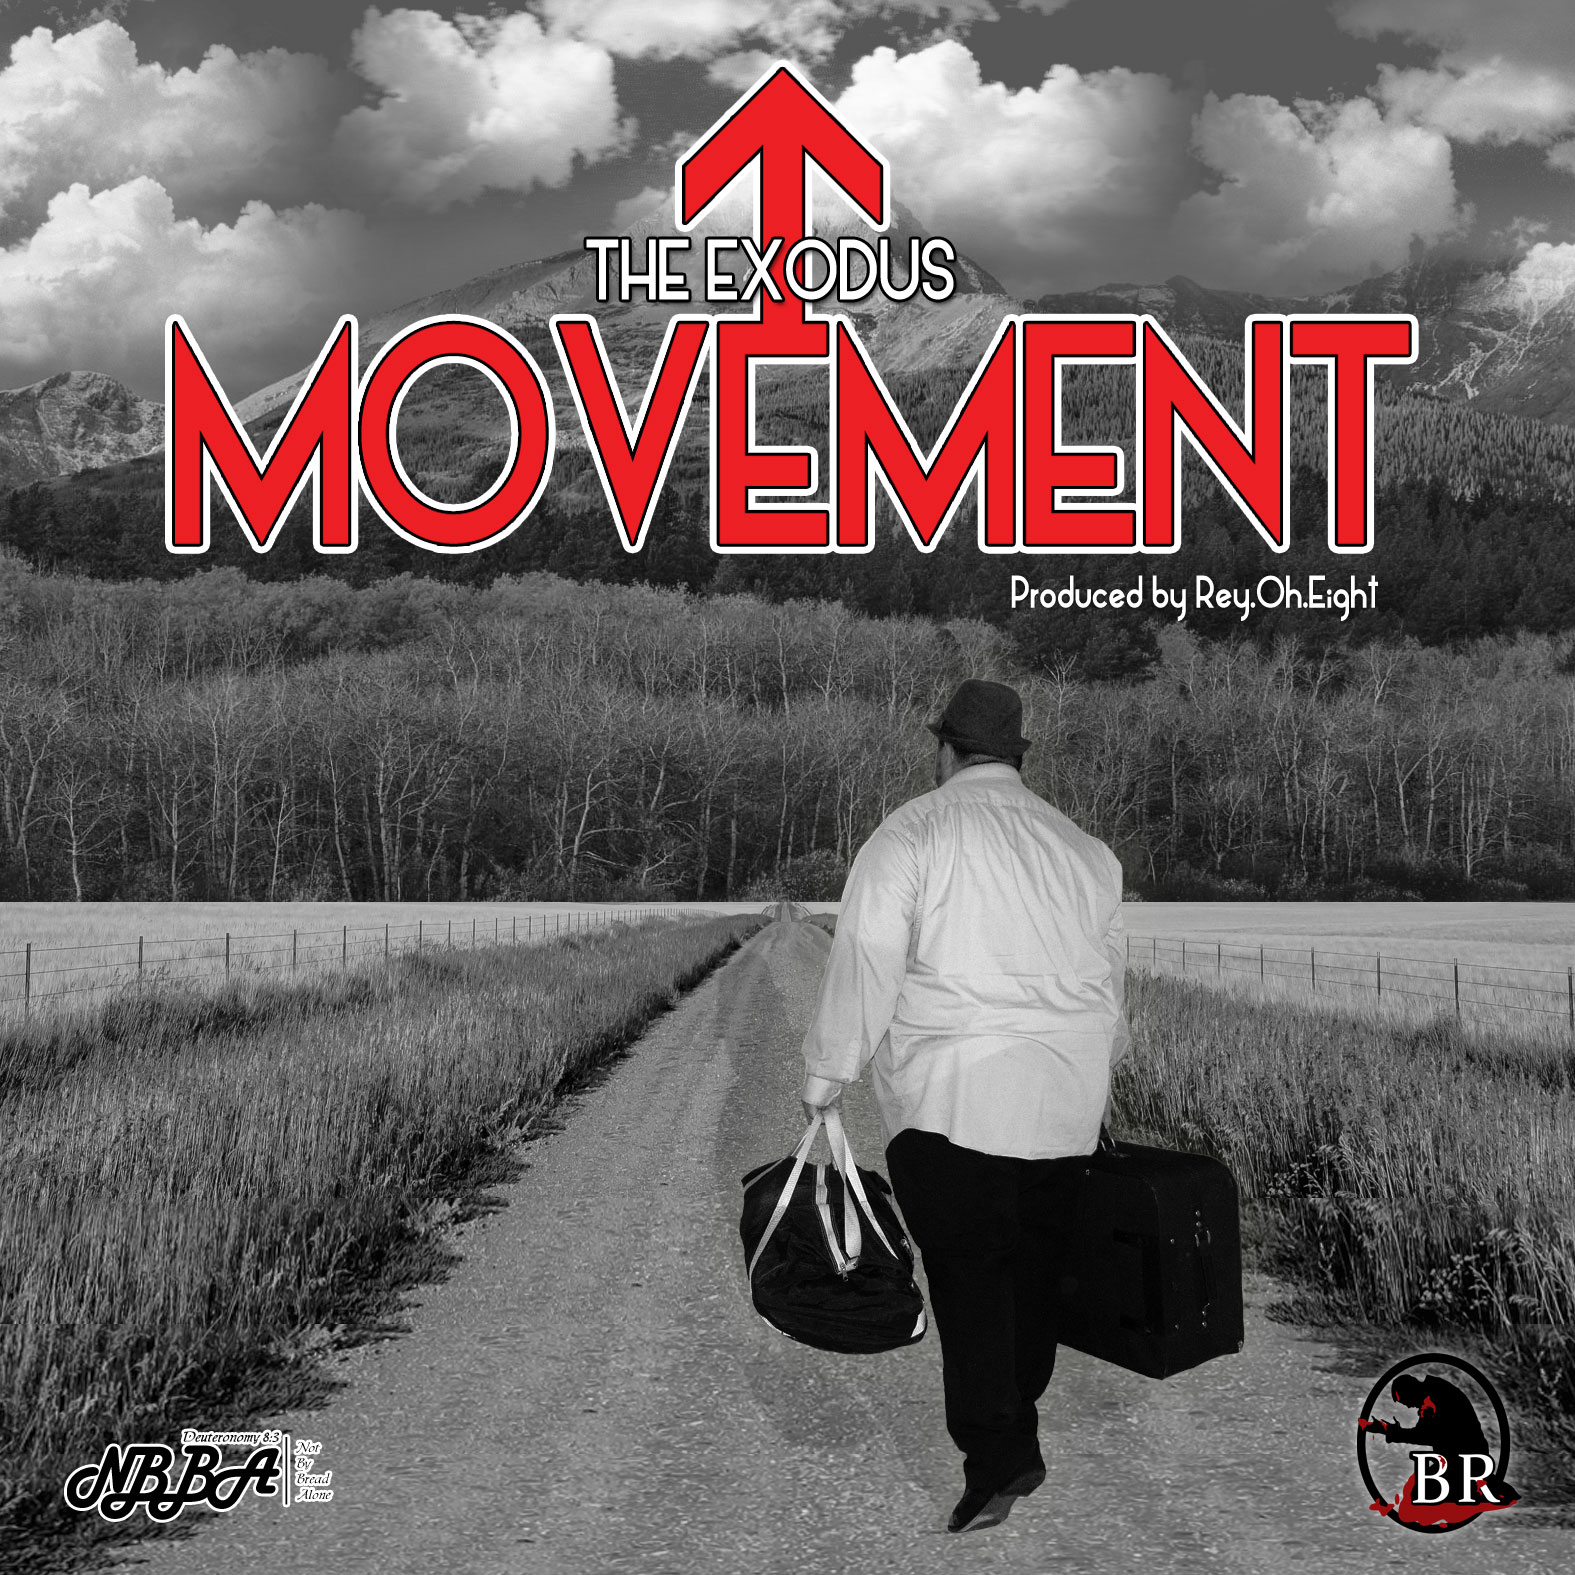 The Exodus Movement EP by Pacaso Ramirez